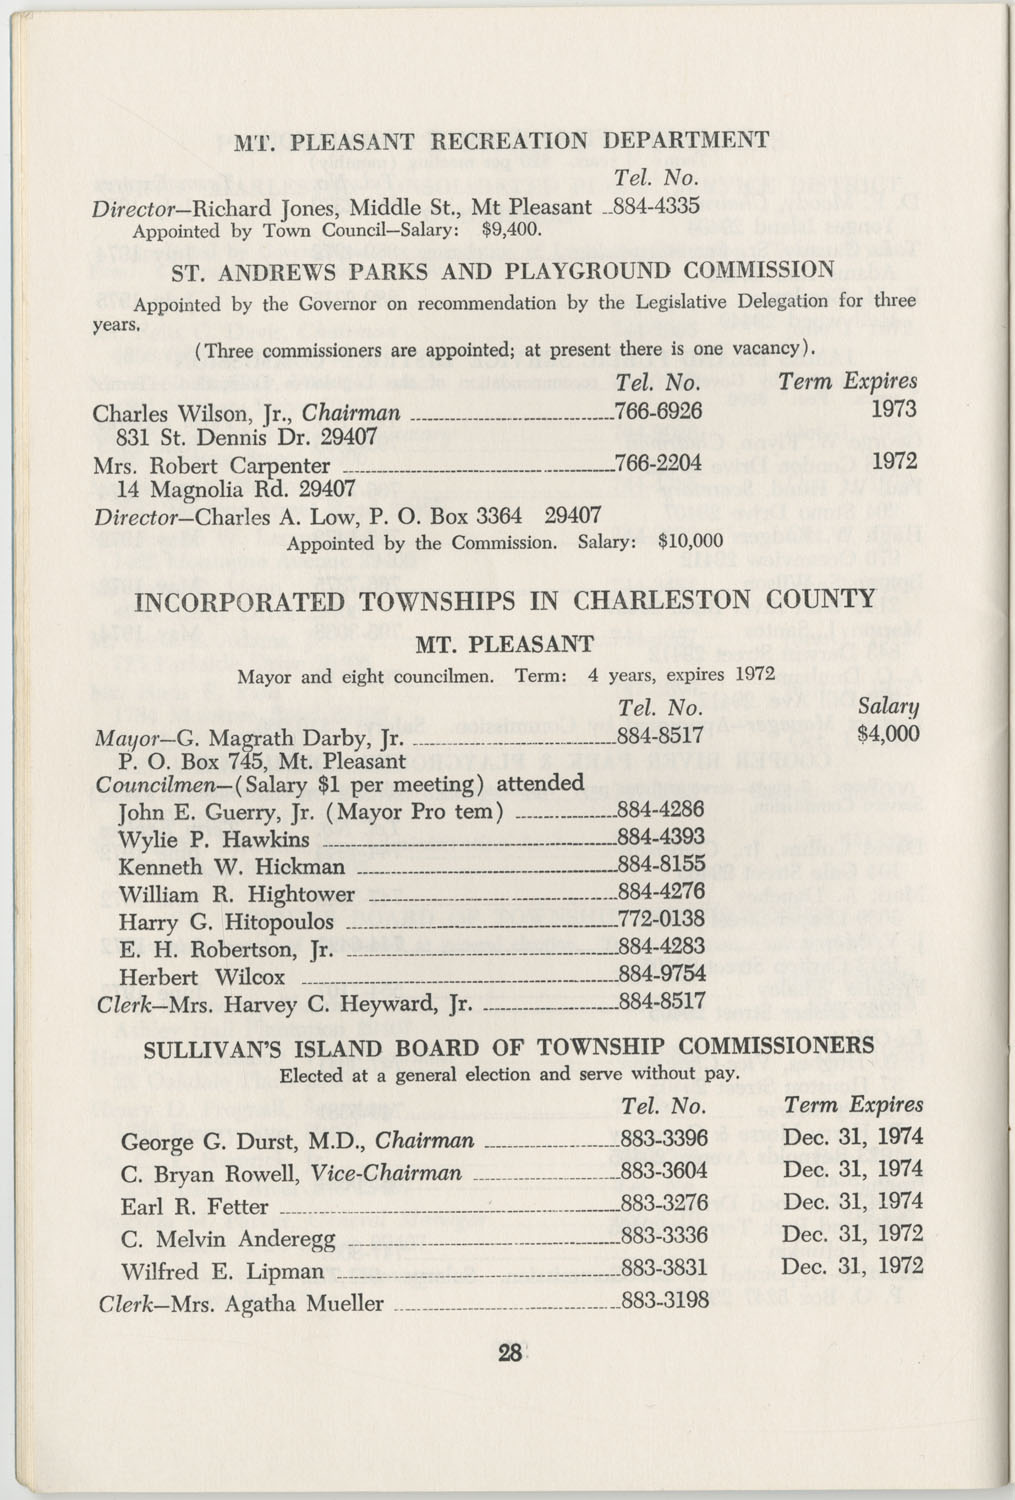 Directory of Public Officials, 1972-1973, Page 28